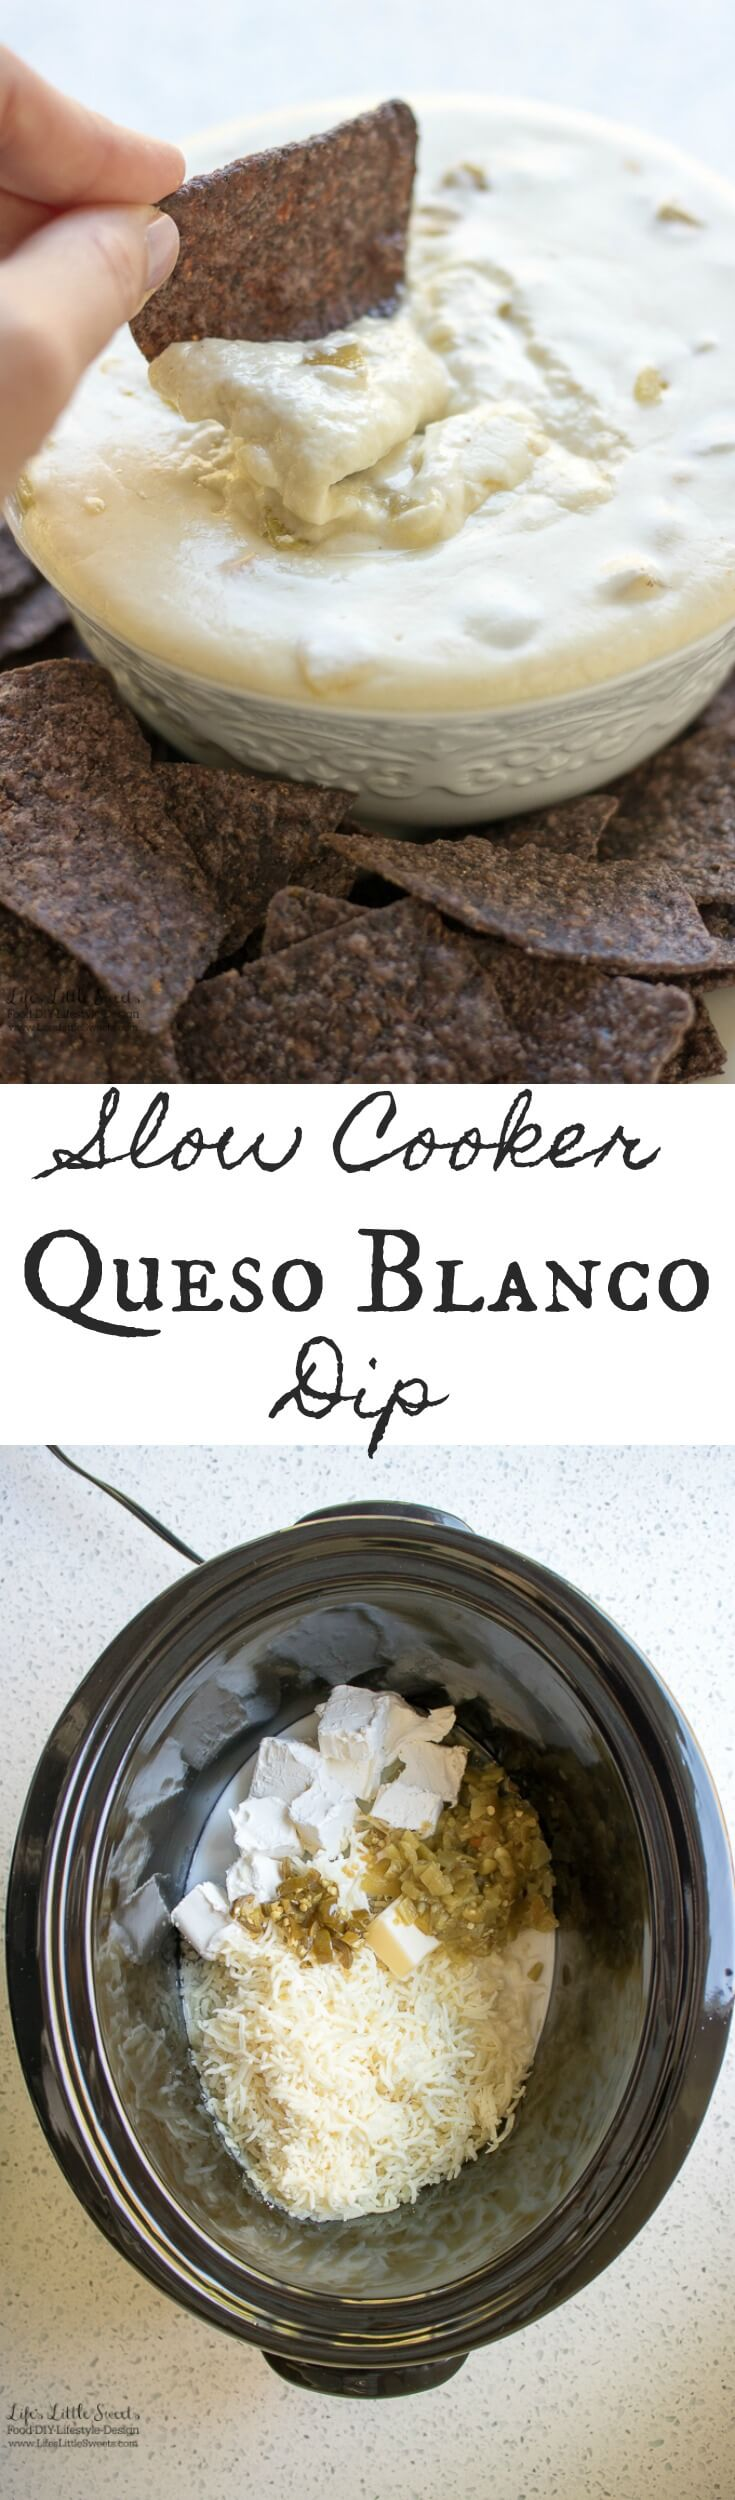 Slow Cooker Queso Blanco Dip is the perfect, savory and satisfying appetizer for any gathering. Enjoy this tasty, cheesy dip with your favorite tortilla chips or pita bread. I show how Scotch-Brite® Scrub Dots Sponges and Dishwand make for easy clean up with your slow cooker! #ScrubWithDots #CollectiveBias #ad